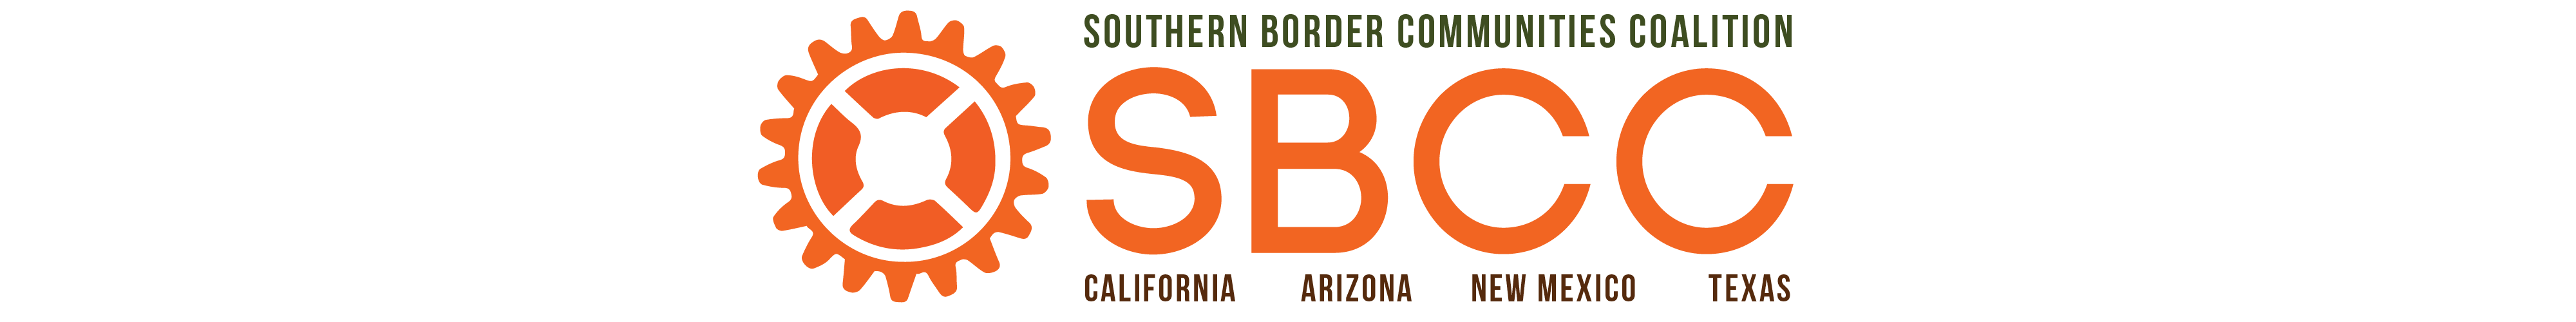 Southern Border Communities Coalition